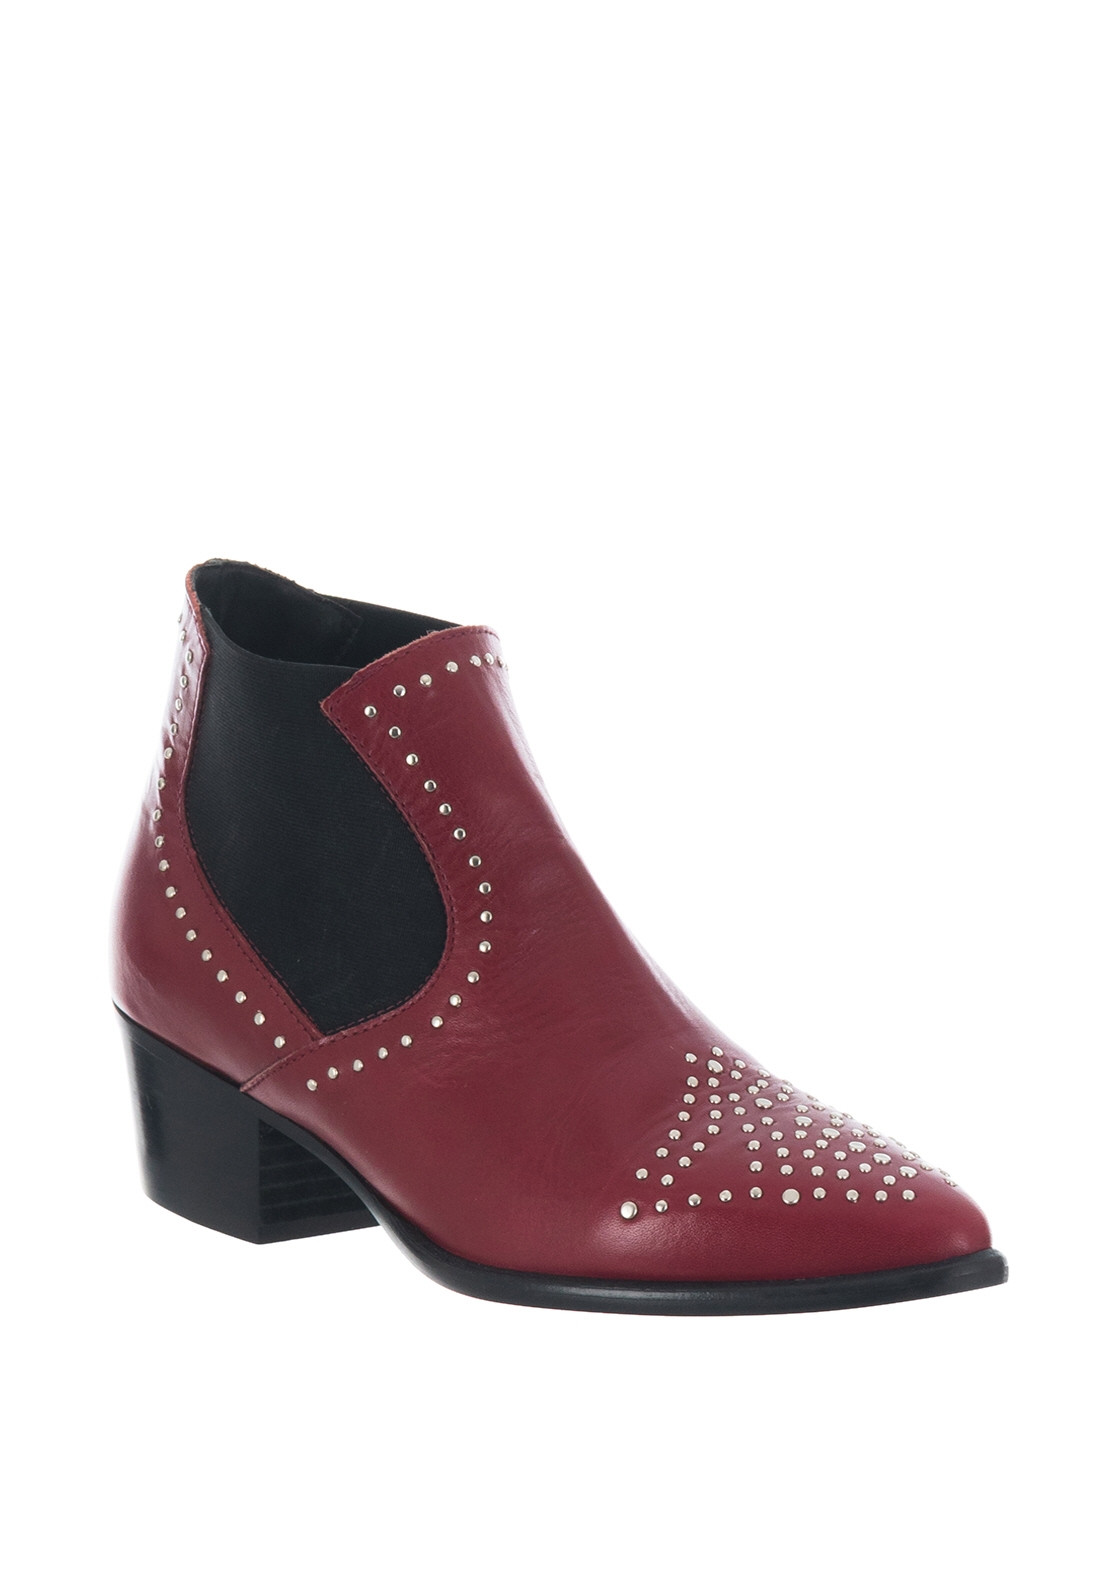 92afbf9bd95 Alpe Leather Stud Western Chelsea Boots, Red